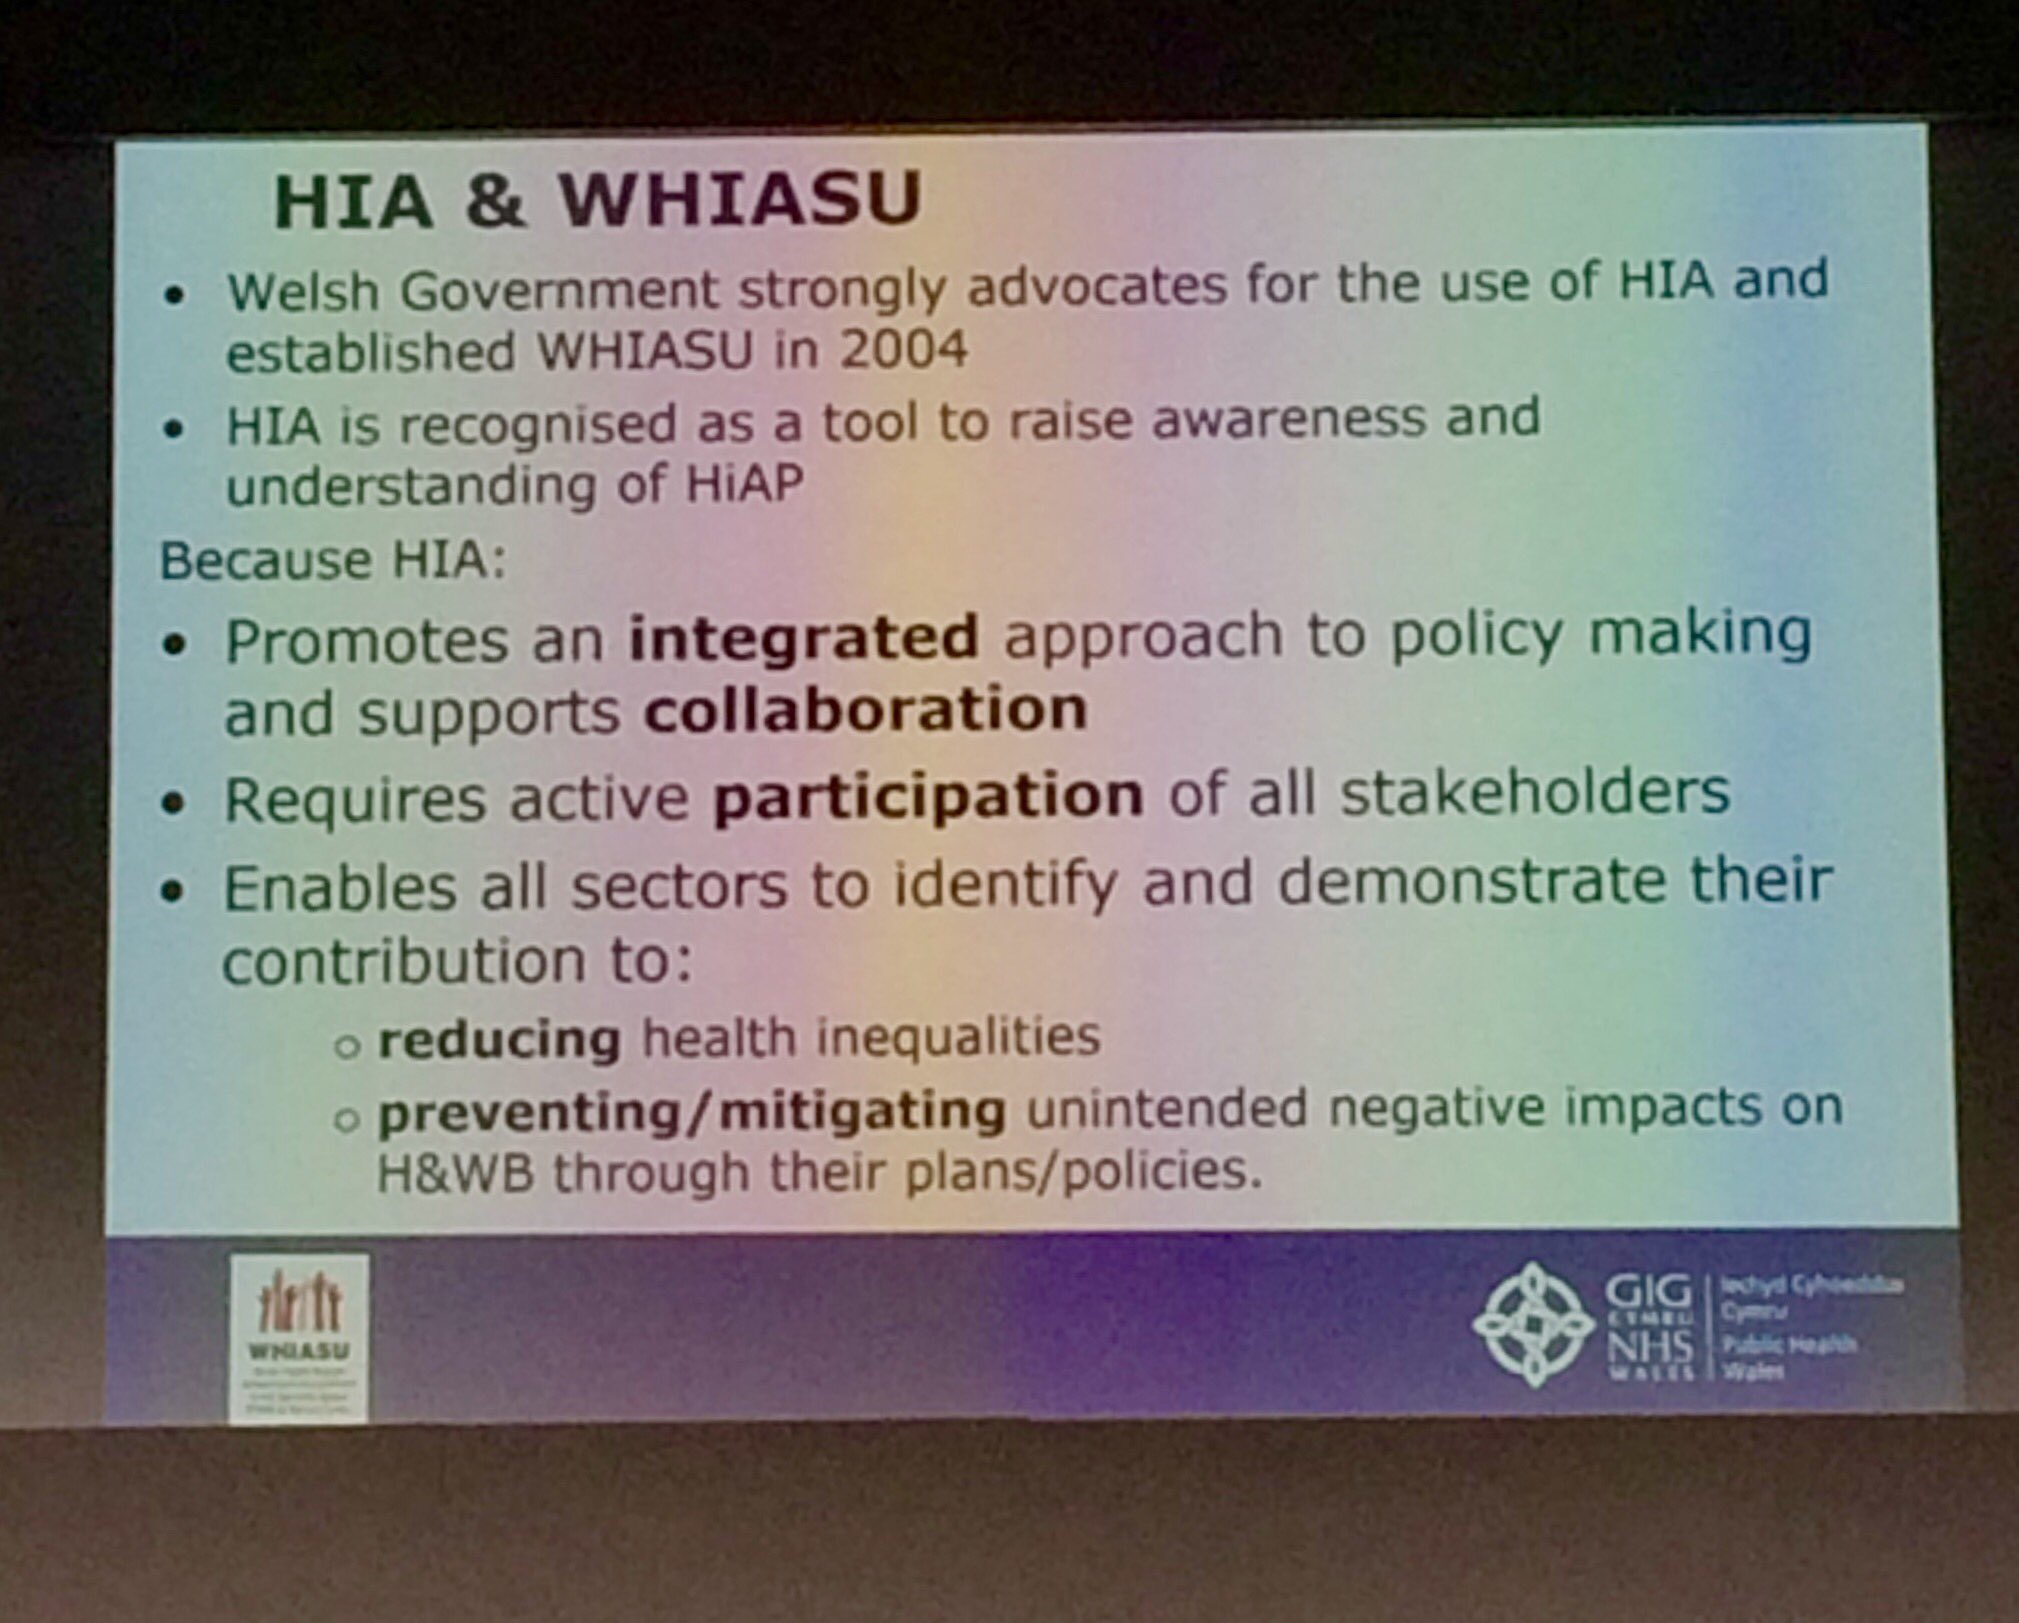 PH Wales: How Health Impact Assessment (HIA) equips the public health workforce to collaborate in addressing health inequalities #FPHconf https://t.co/Kt9Nz6LTof